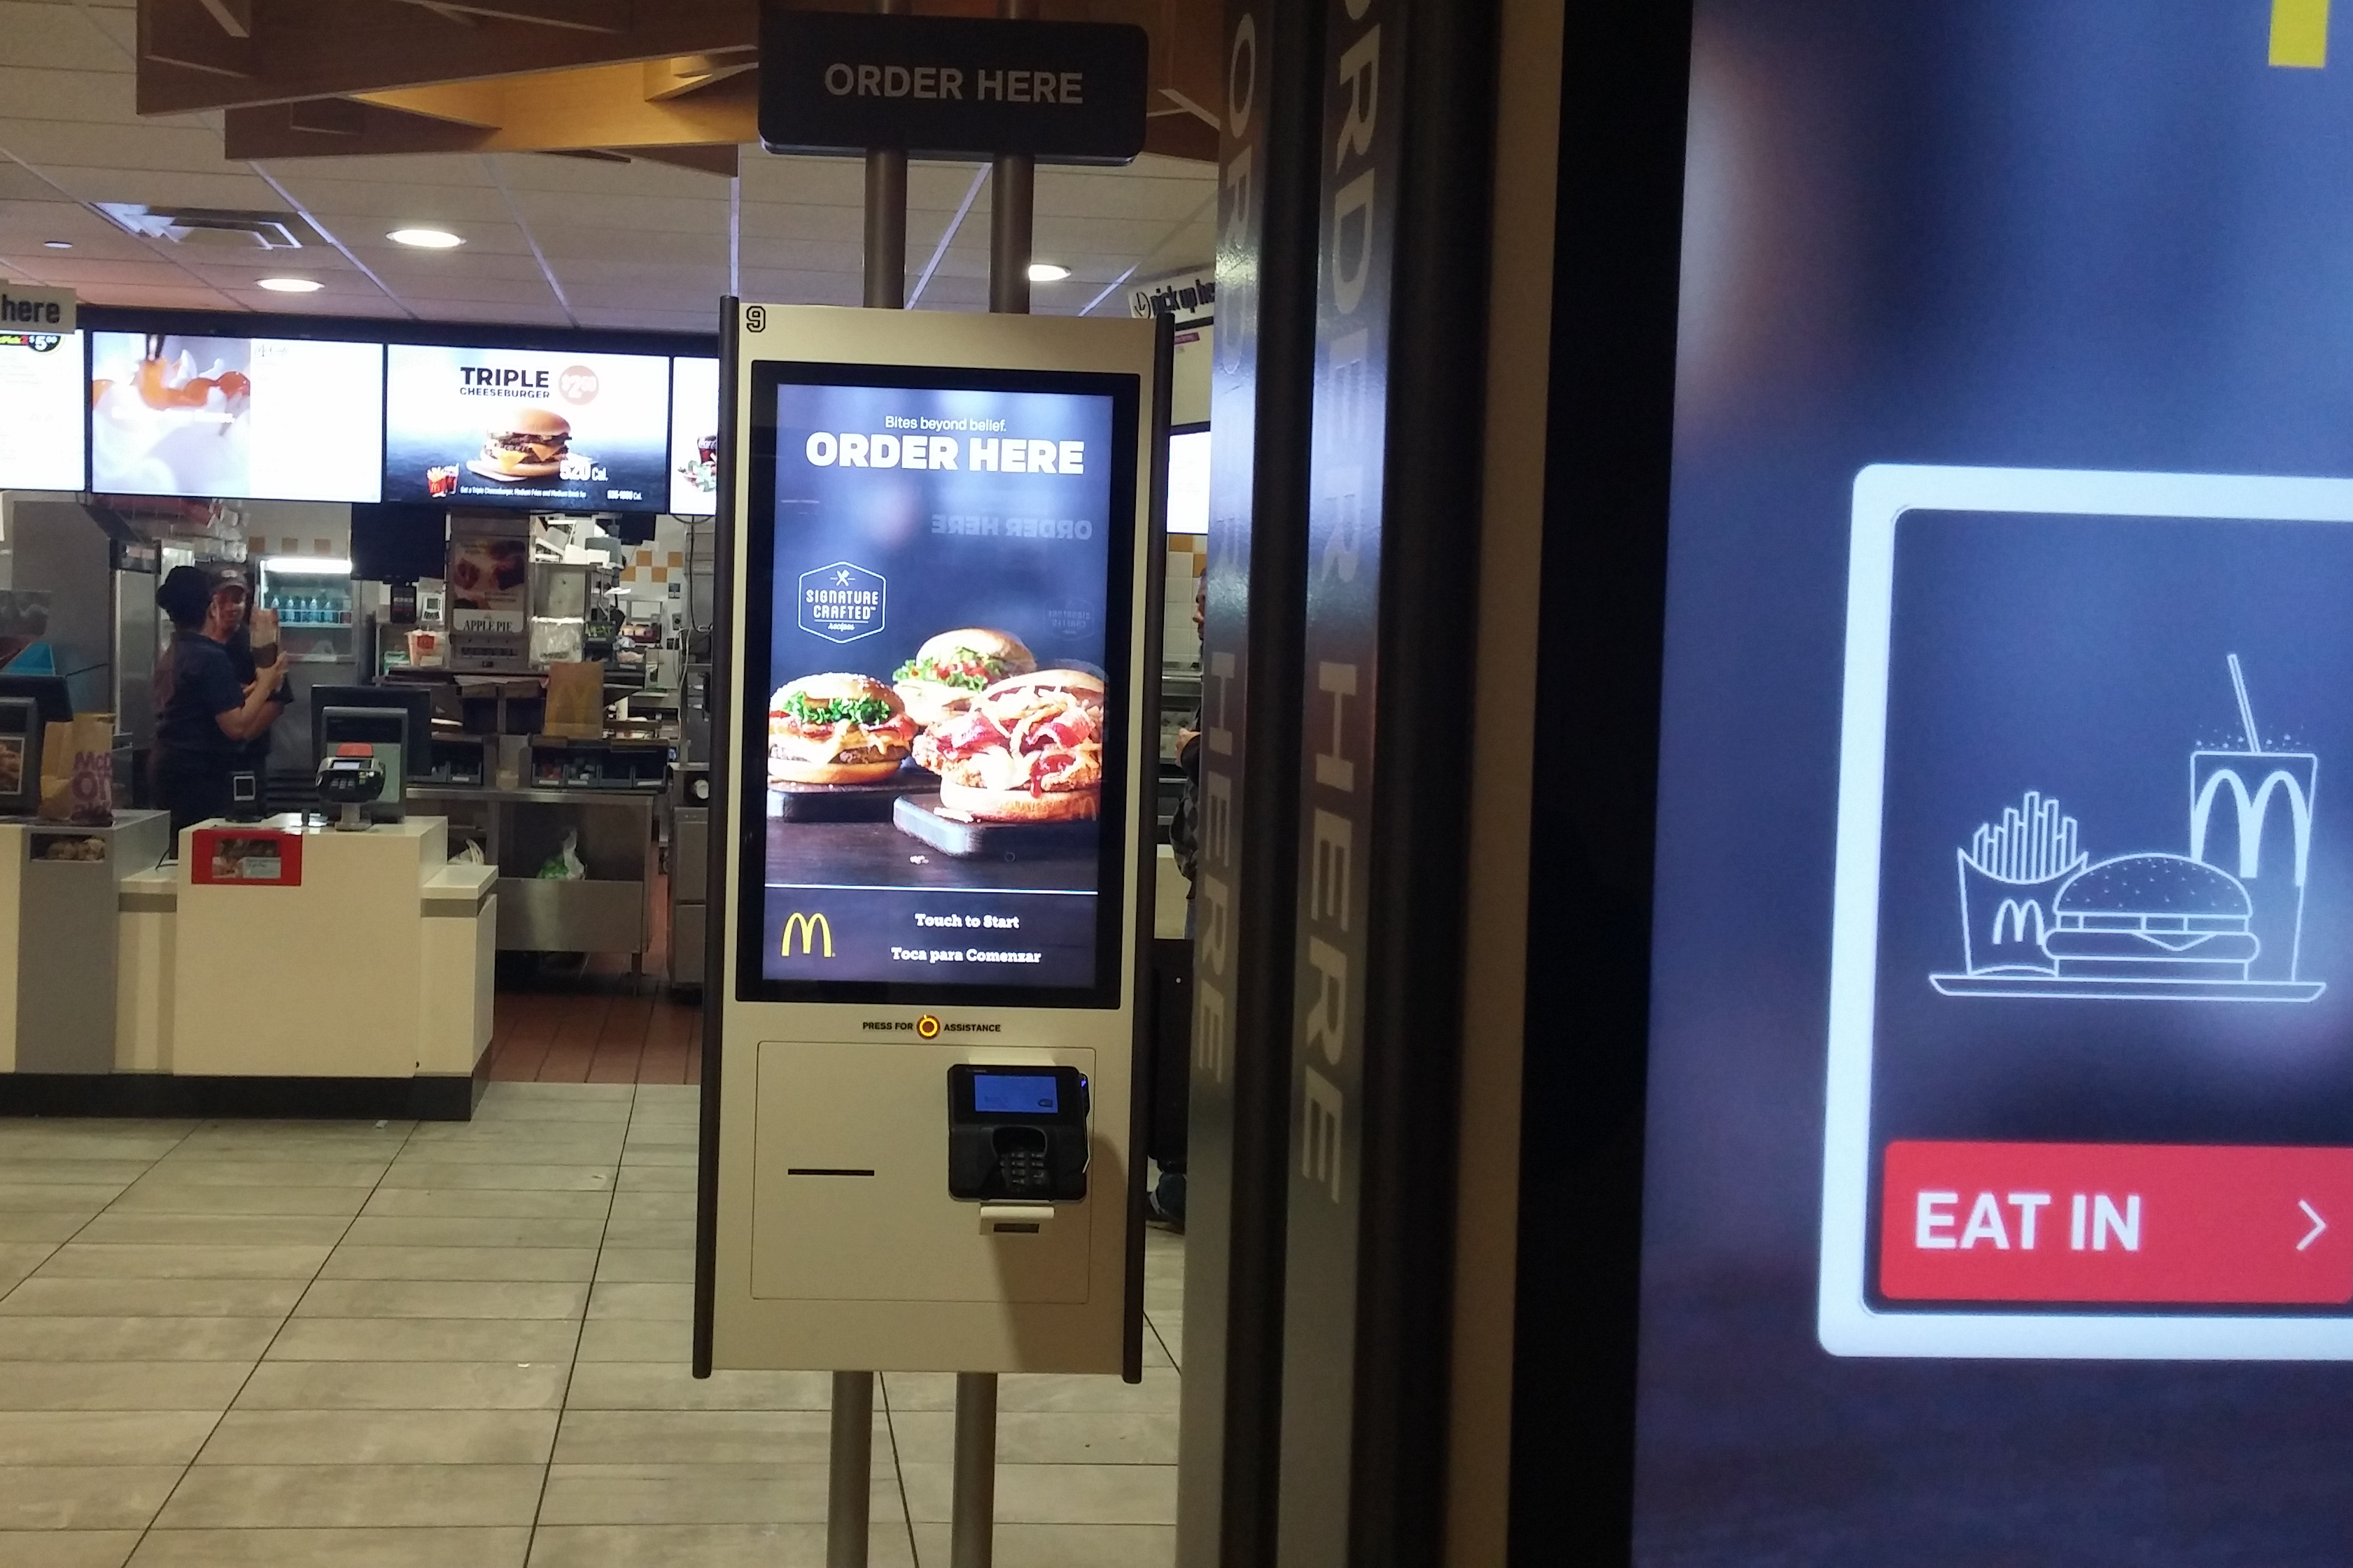 Workers wait at cash registers at a McDonald's restaurant in New York fitted with self-serve kiosks.